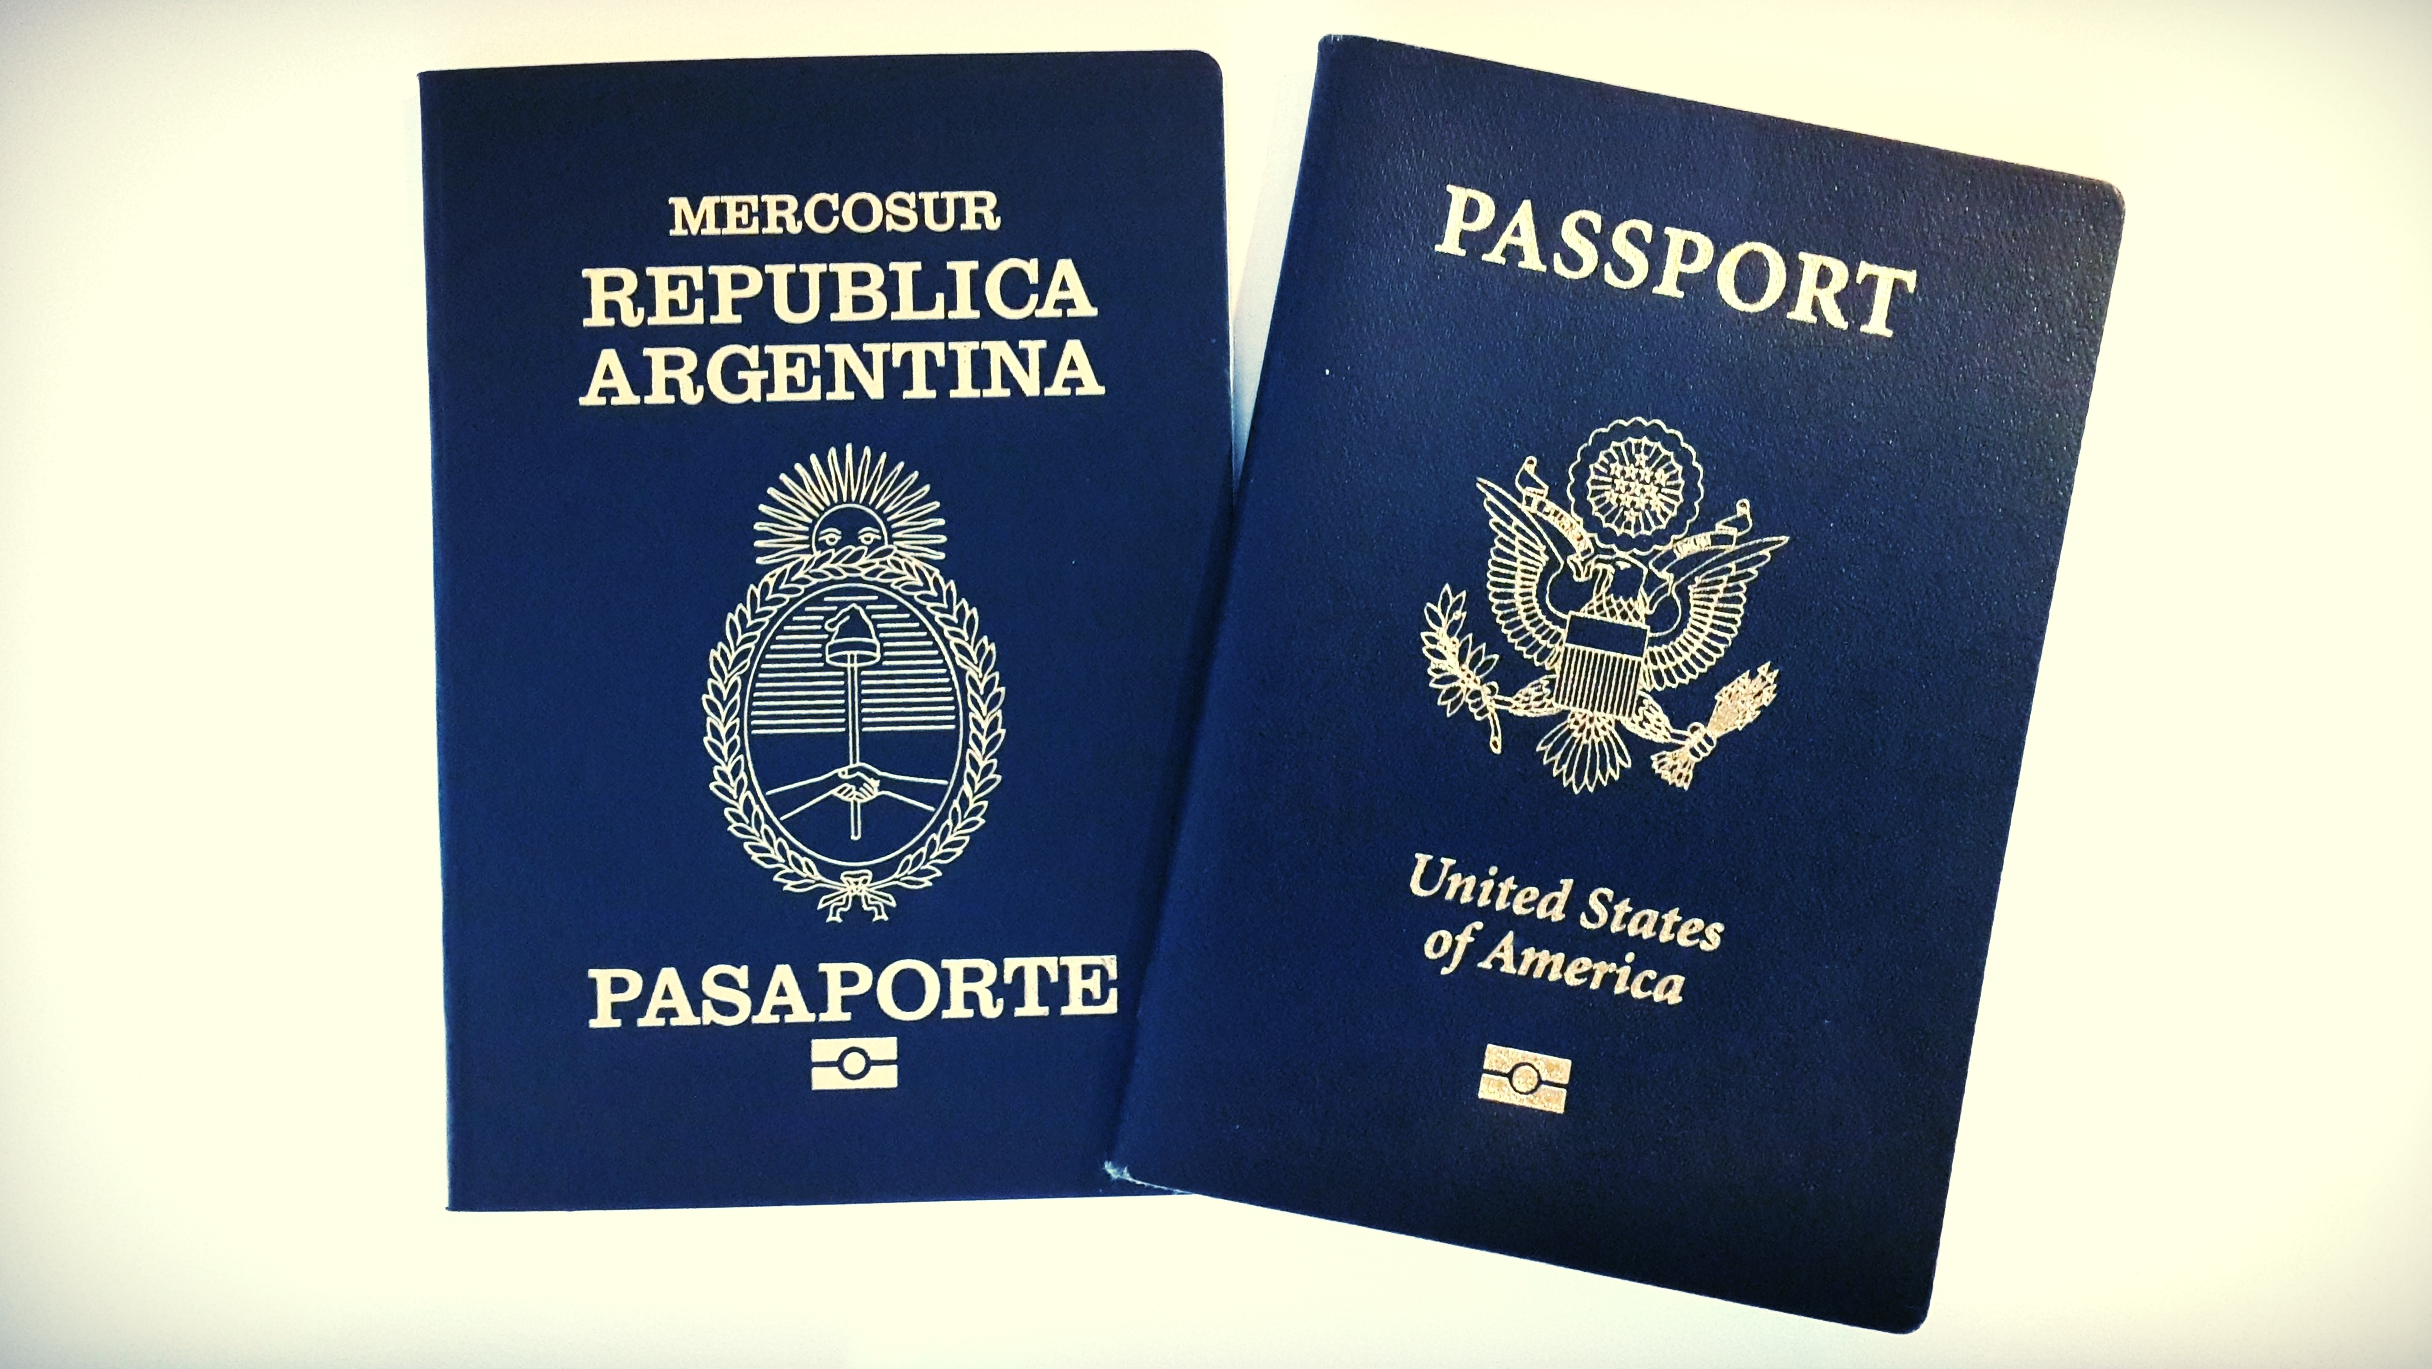 Our Argentine passports just arrived!